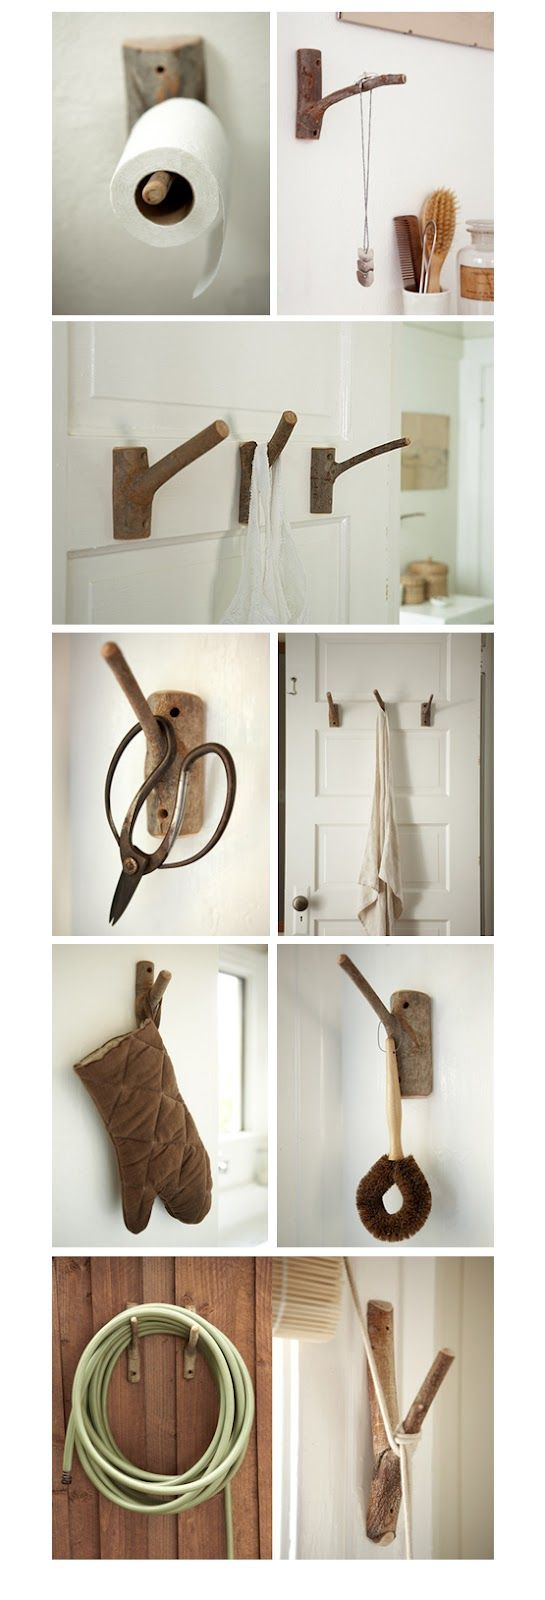 Amazing rustic hooks out of wood!